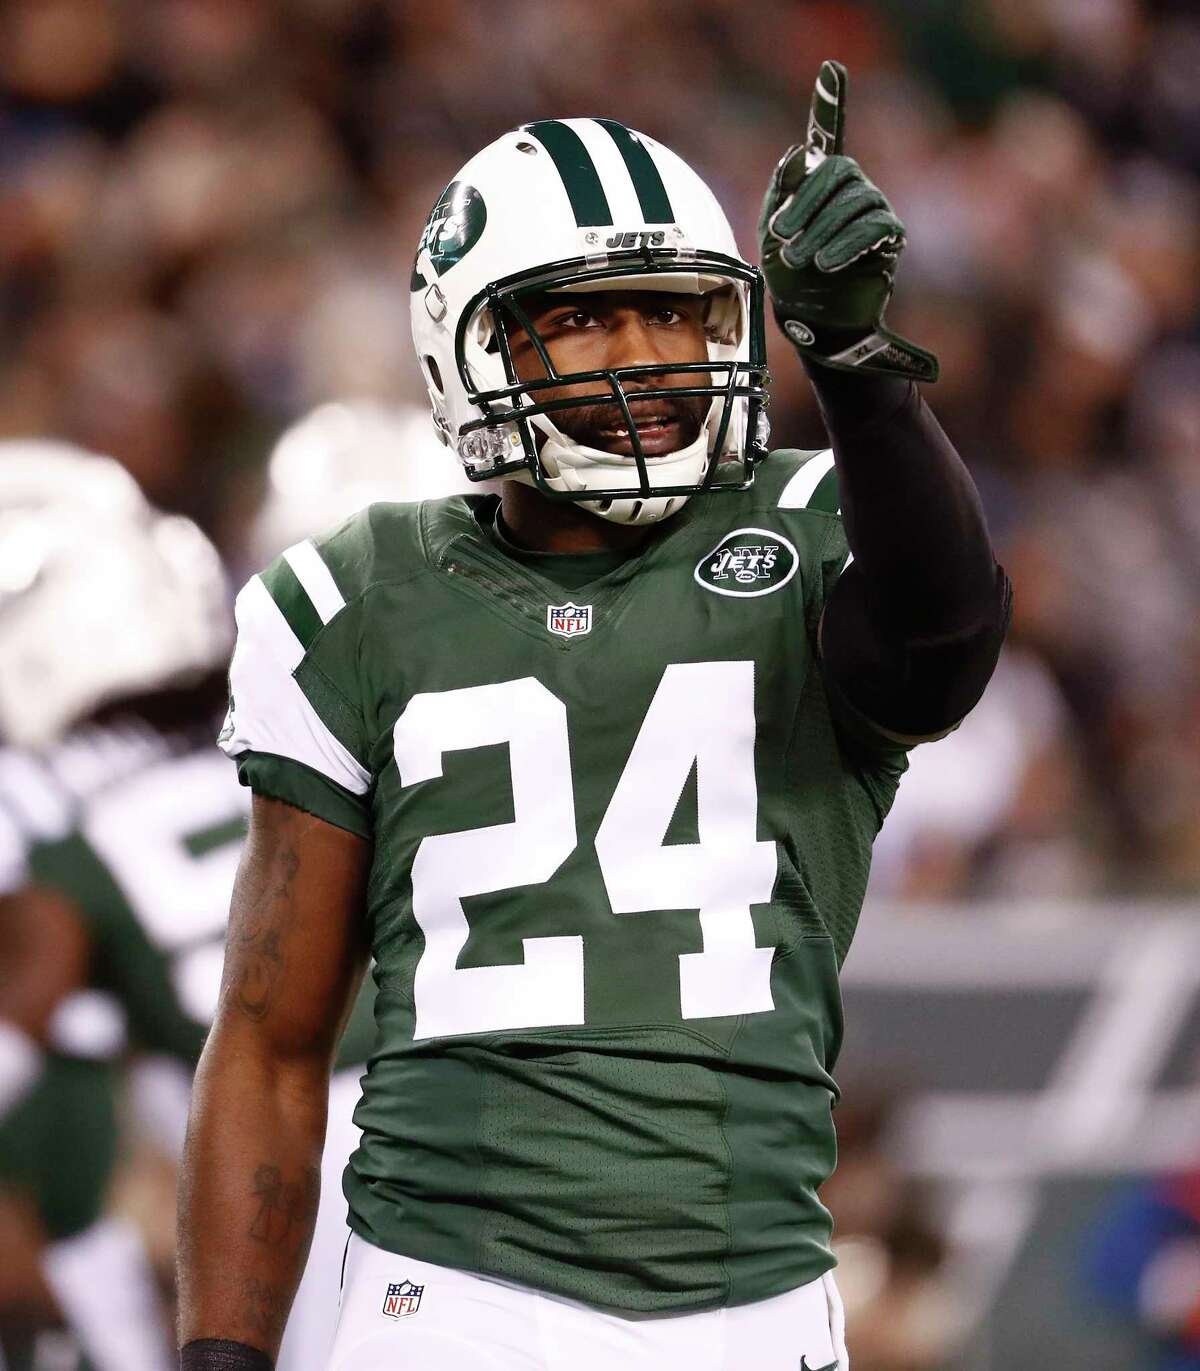 FILE-This Nov. 27, 2016, file photo shows New York Jets cornerback Darrelle Revis reacting after a defensive play against the New England Patriots during an NFL football game in East Rutherford, N.J. The Kansas City Chiefs needed help in their leaky defensive backfield. Revis was ready to provide it. So the AFC West leaders signed the seven-time Pro Bowl cornerback on Wednesday, Nov. 22, 2017, a surprising mid-season move involving a big-name player. (AP Photo/Julio Cortez, File) ORG XMIT: NYSH301